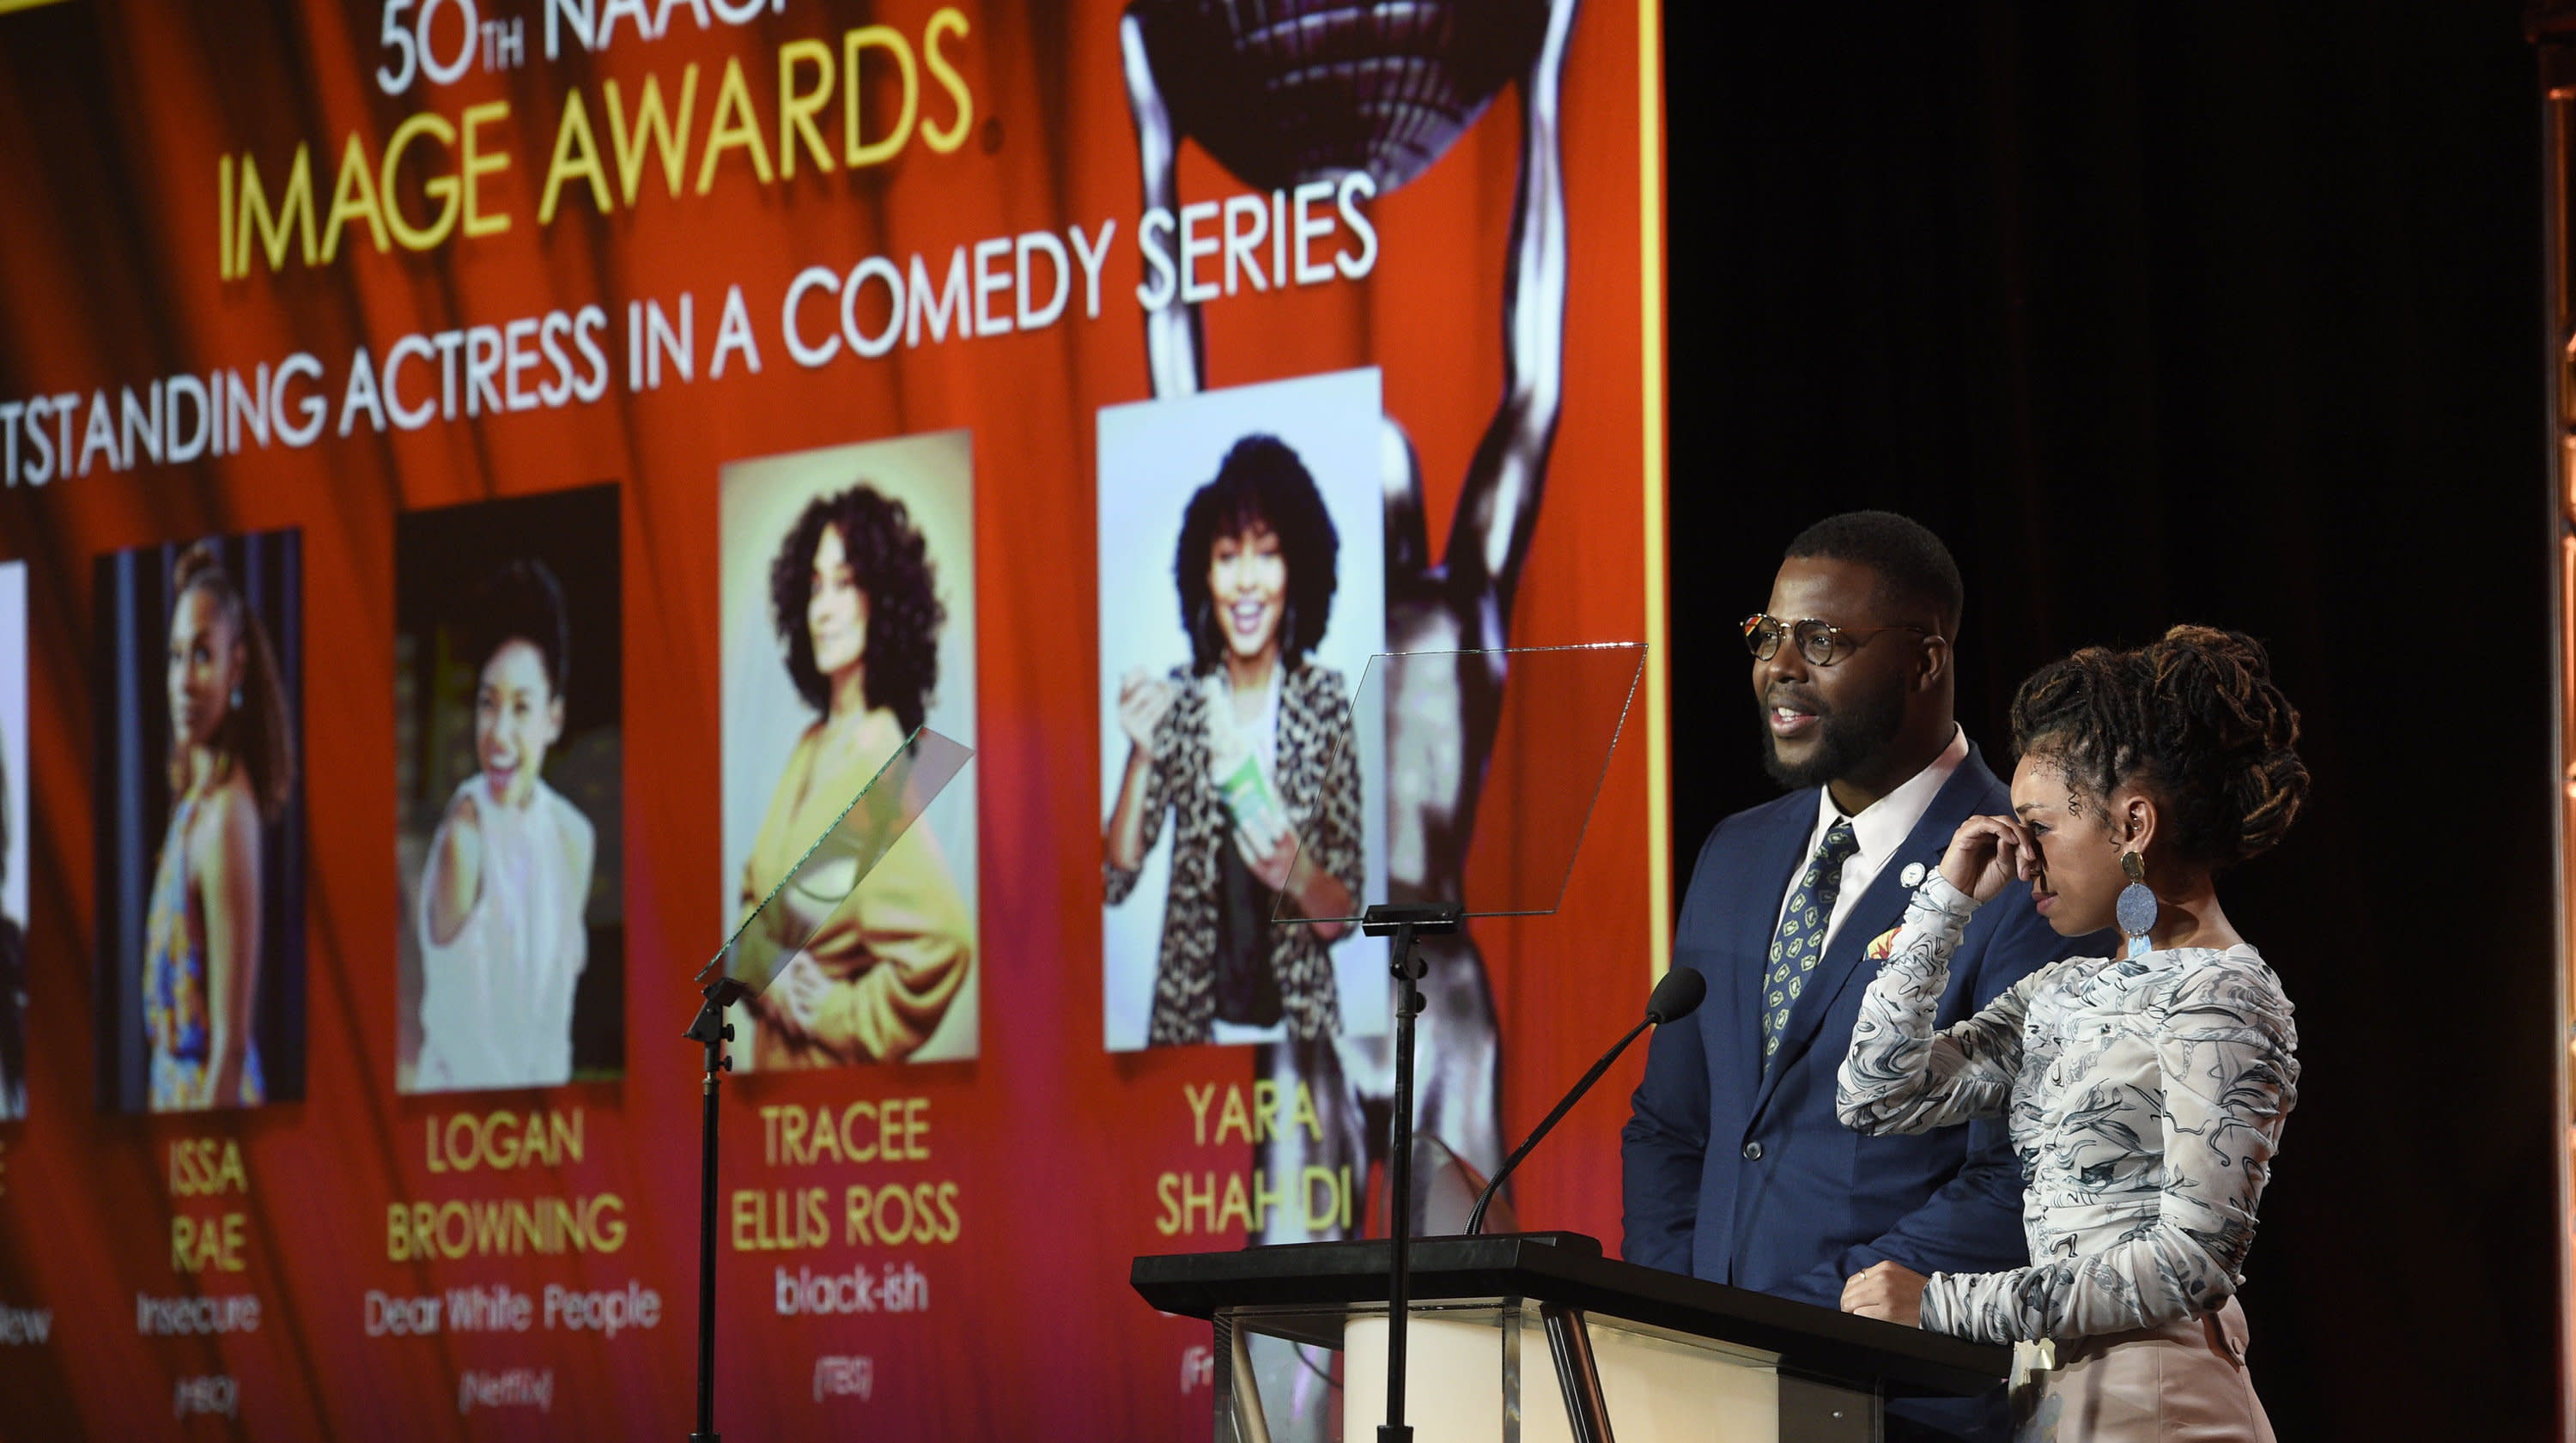 50th NAACP Image Awards: Here Are The Winners